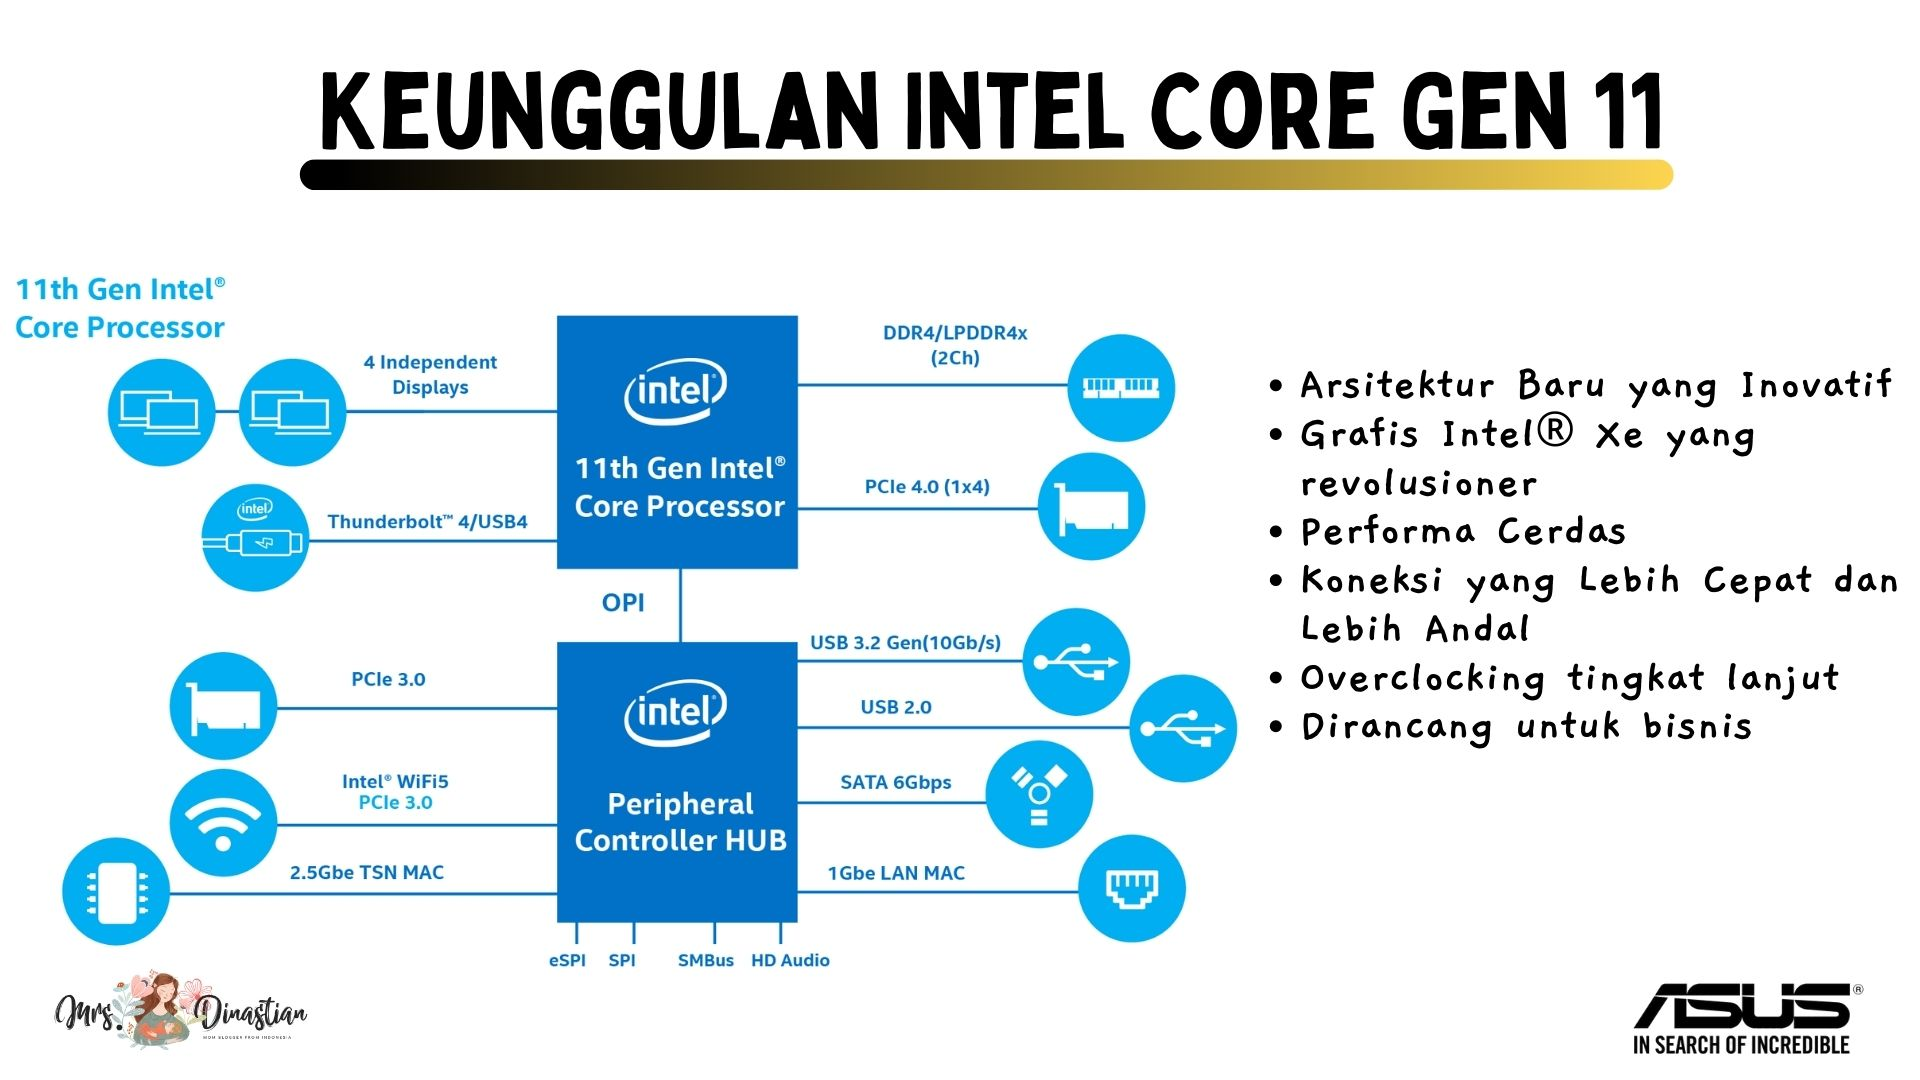 Keunggulan Intel Core Gen 11